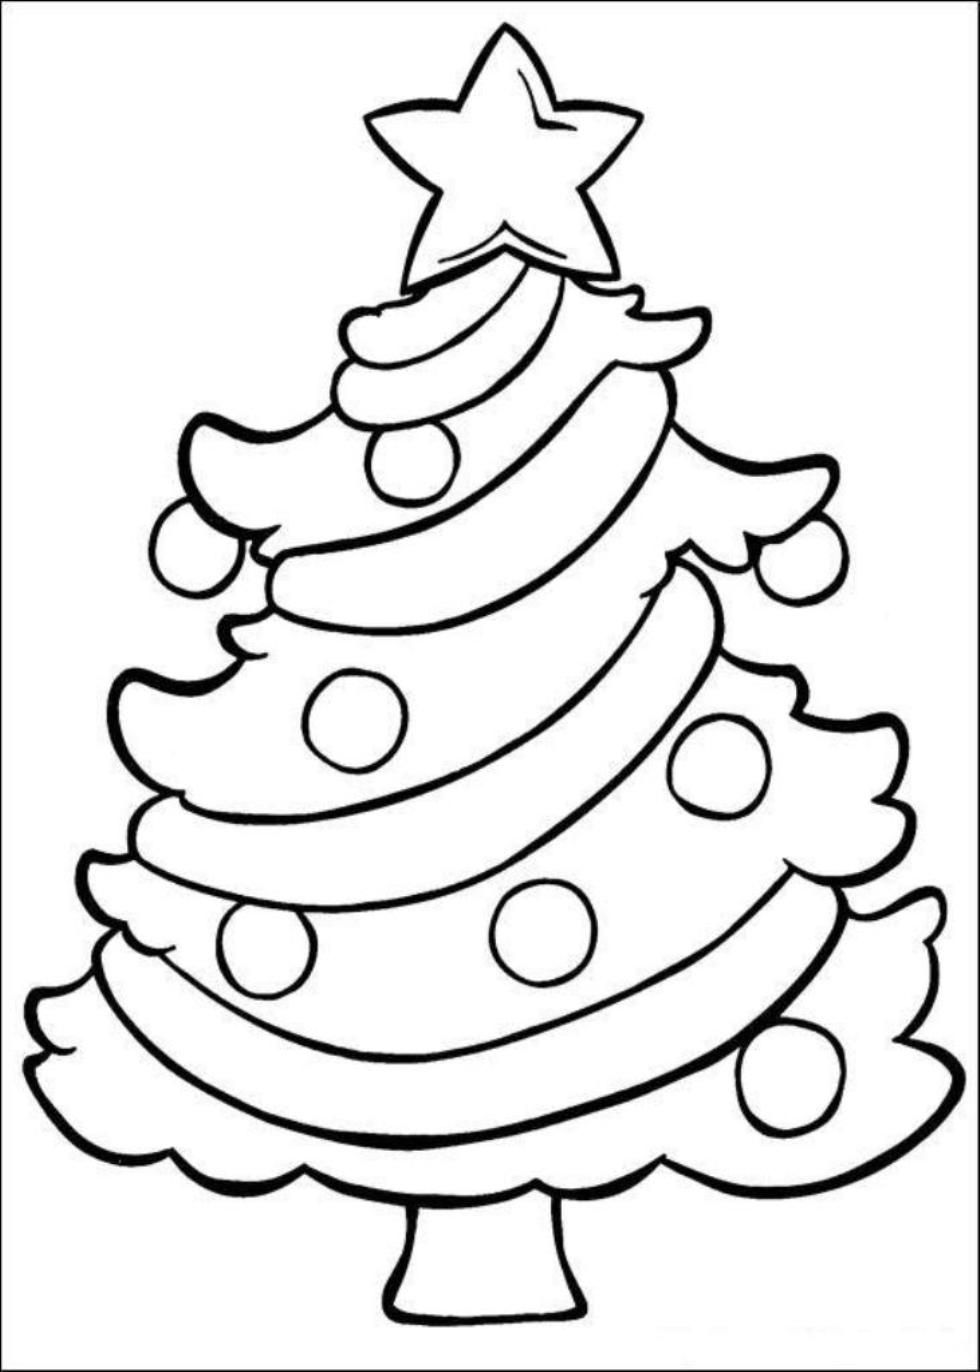 christmal coloring pages - photo#18